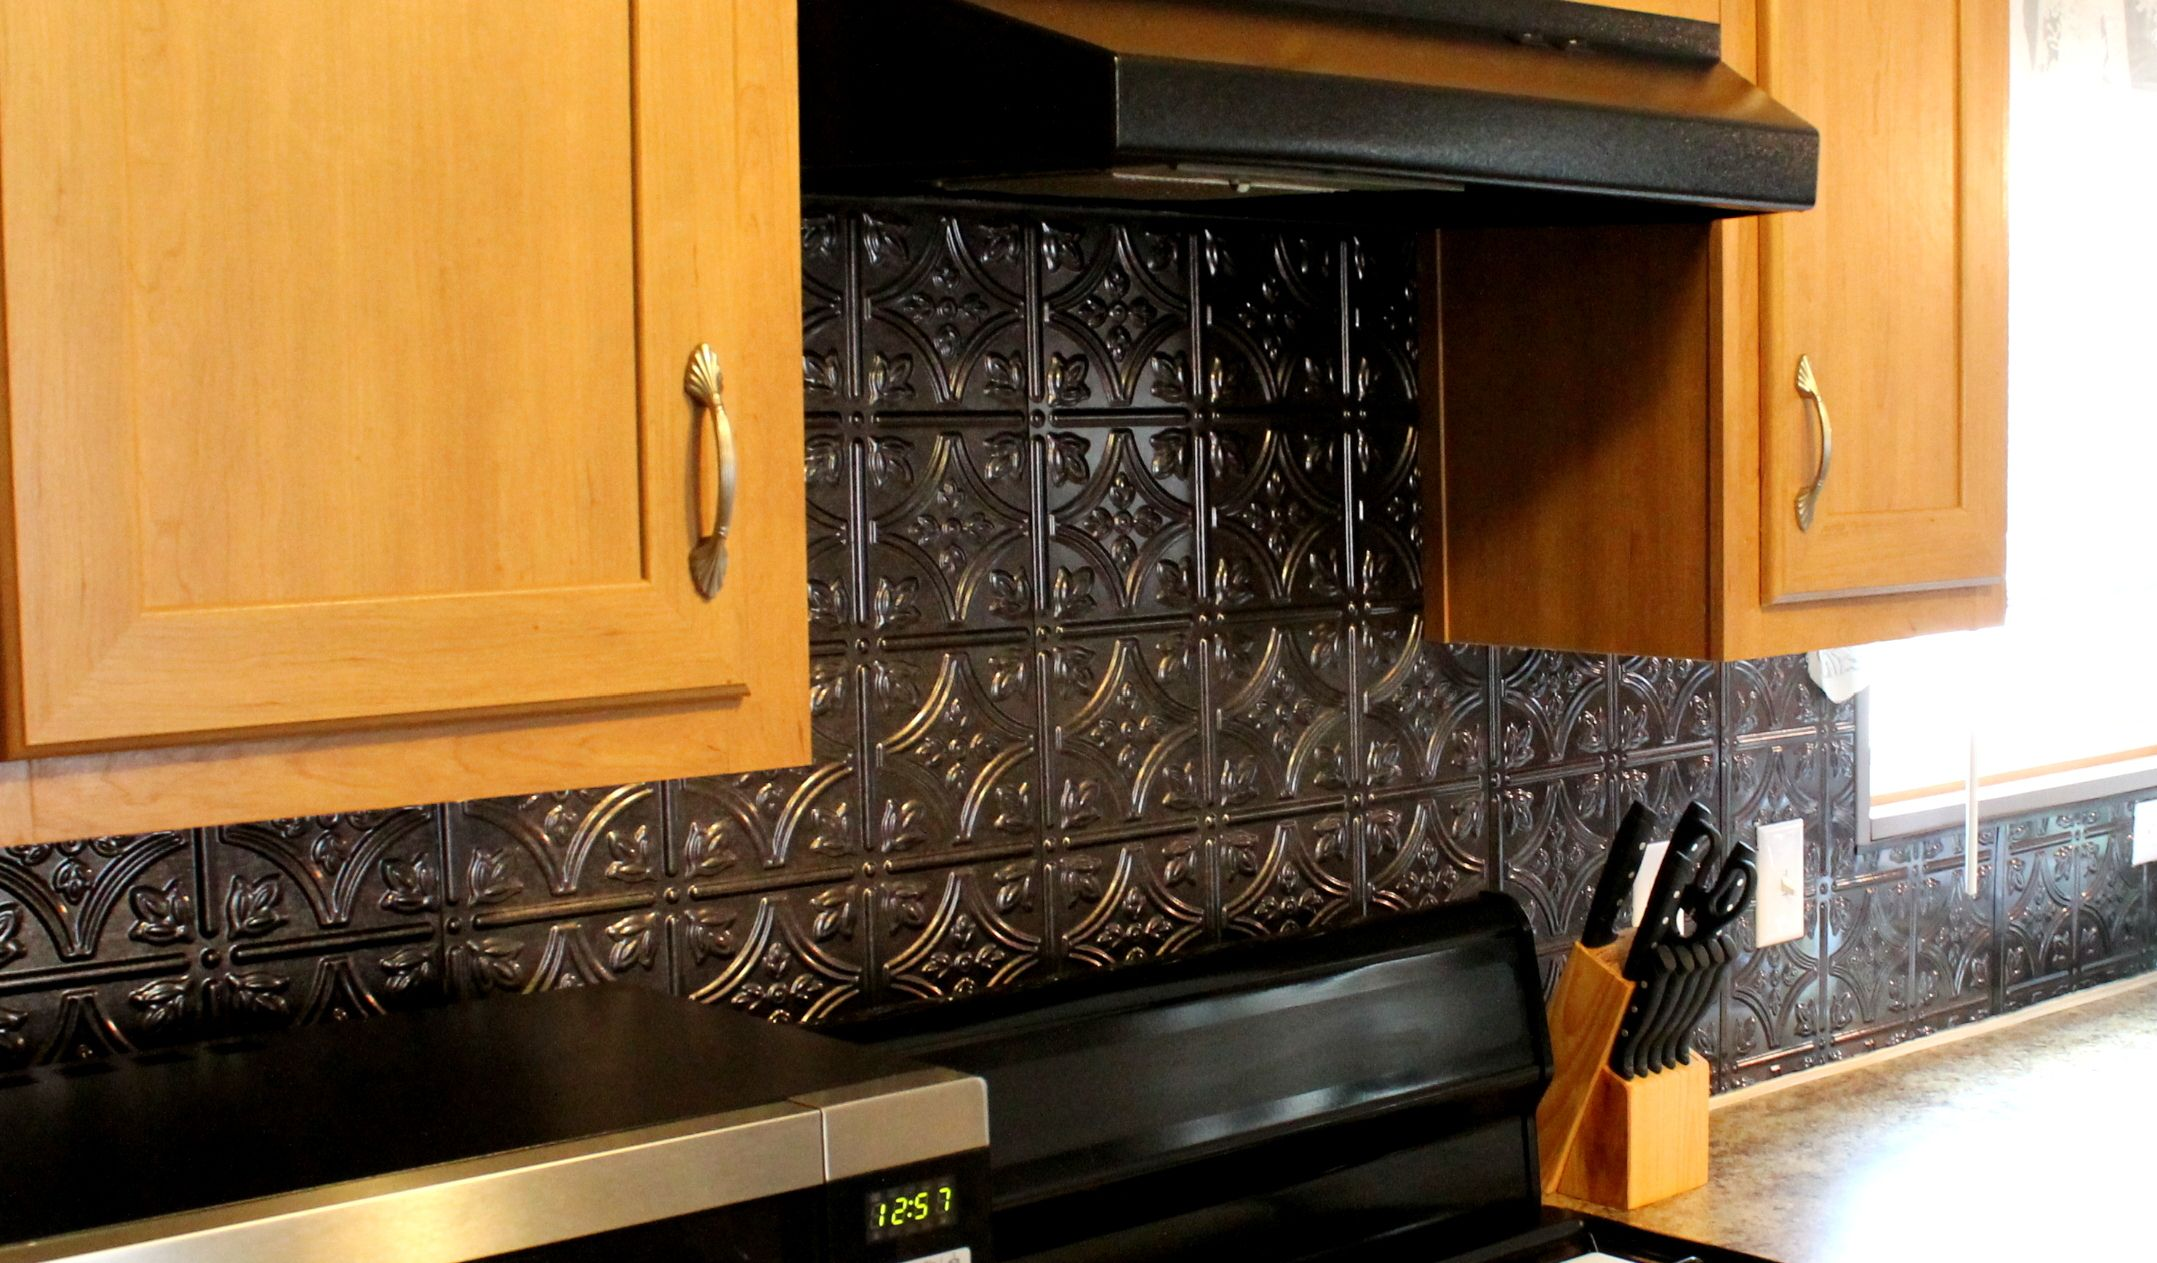 - Whole Kitchen Backsplash. This Is A Fasade Product Found At